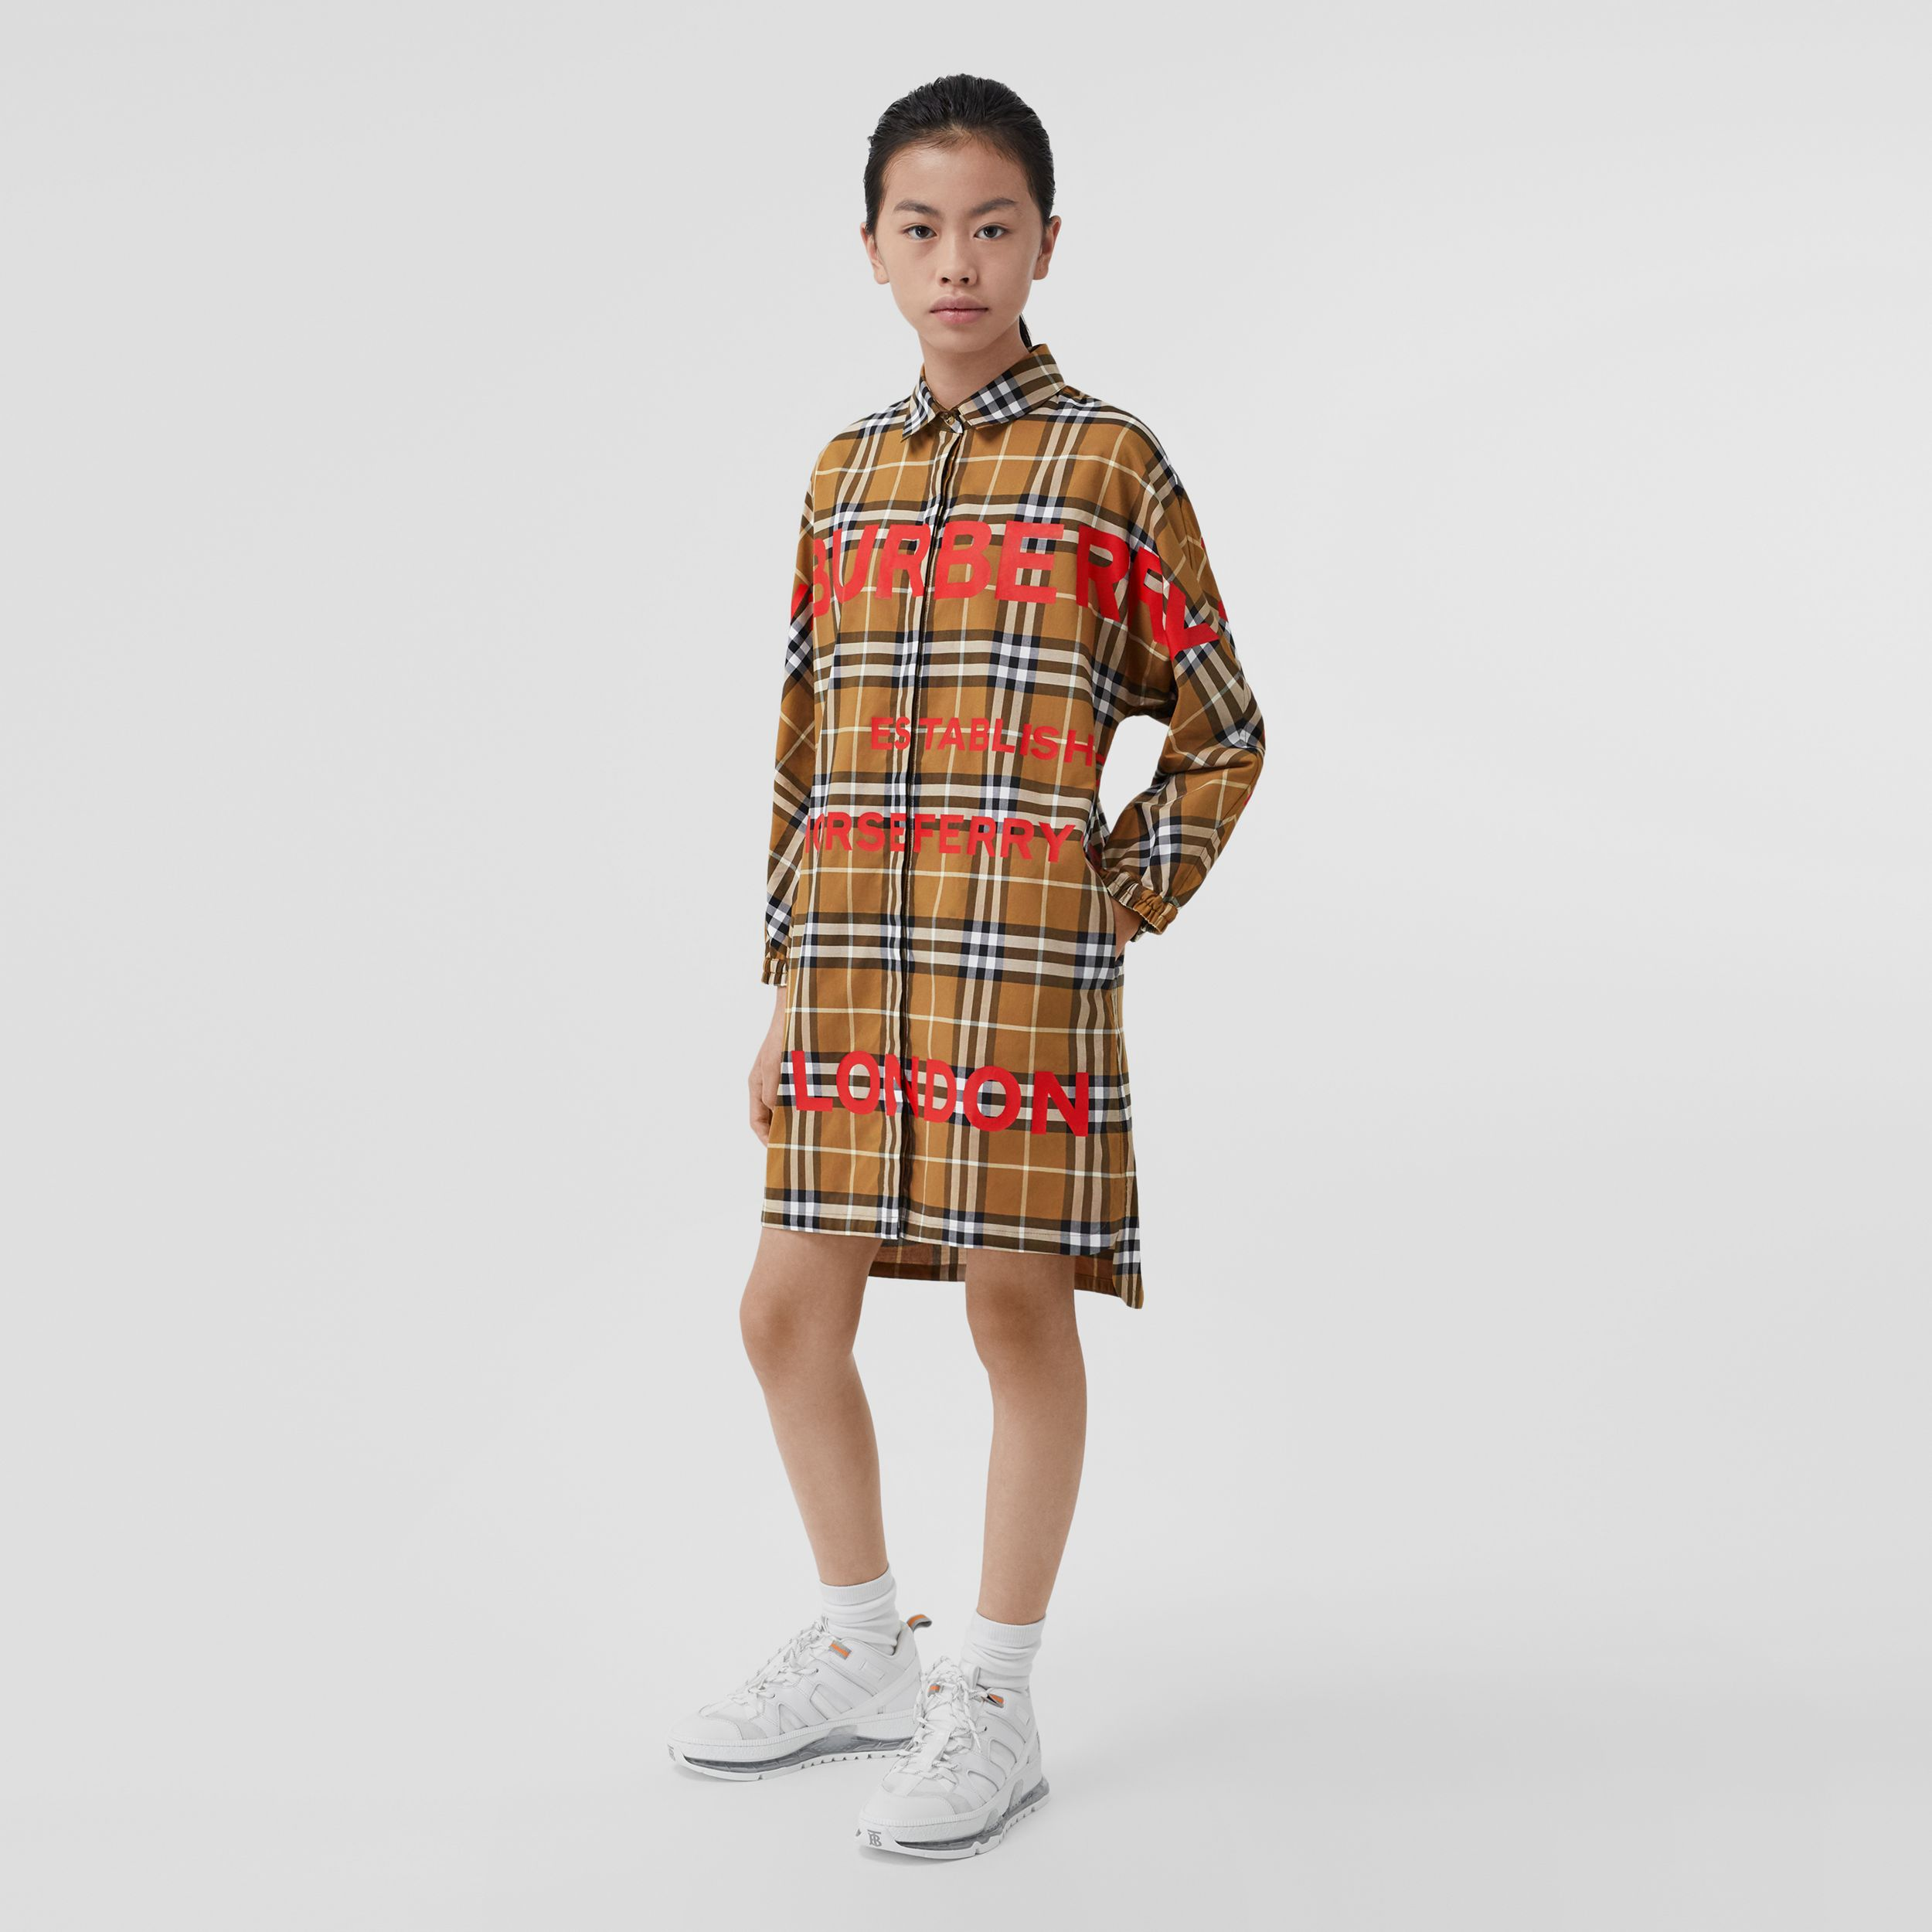 Horseferry Print Check Cotton Shirt Dress in Warm Walnut | Burberry - 3